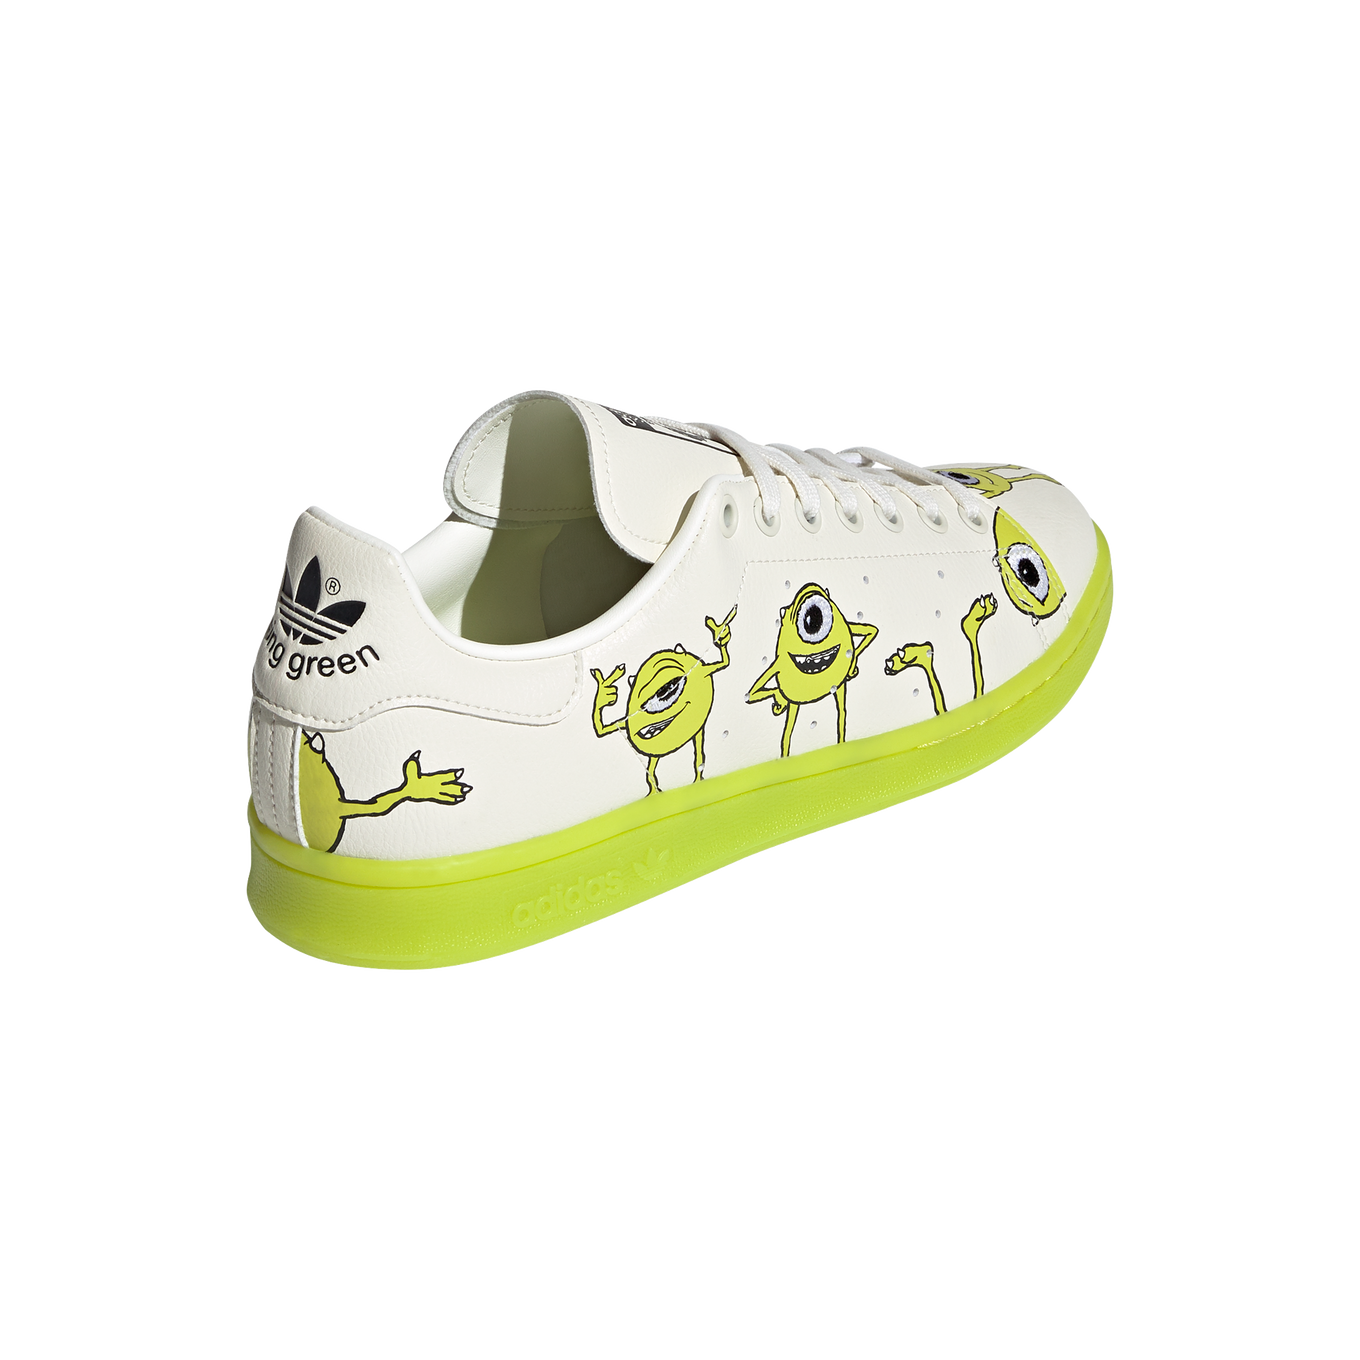 adidas monster shoes